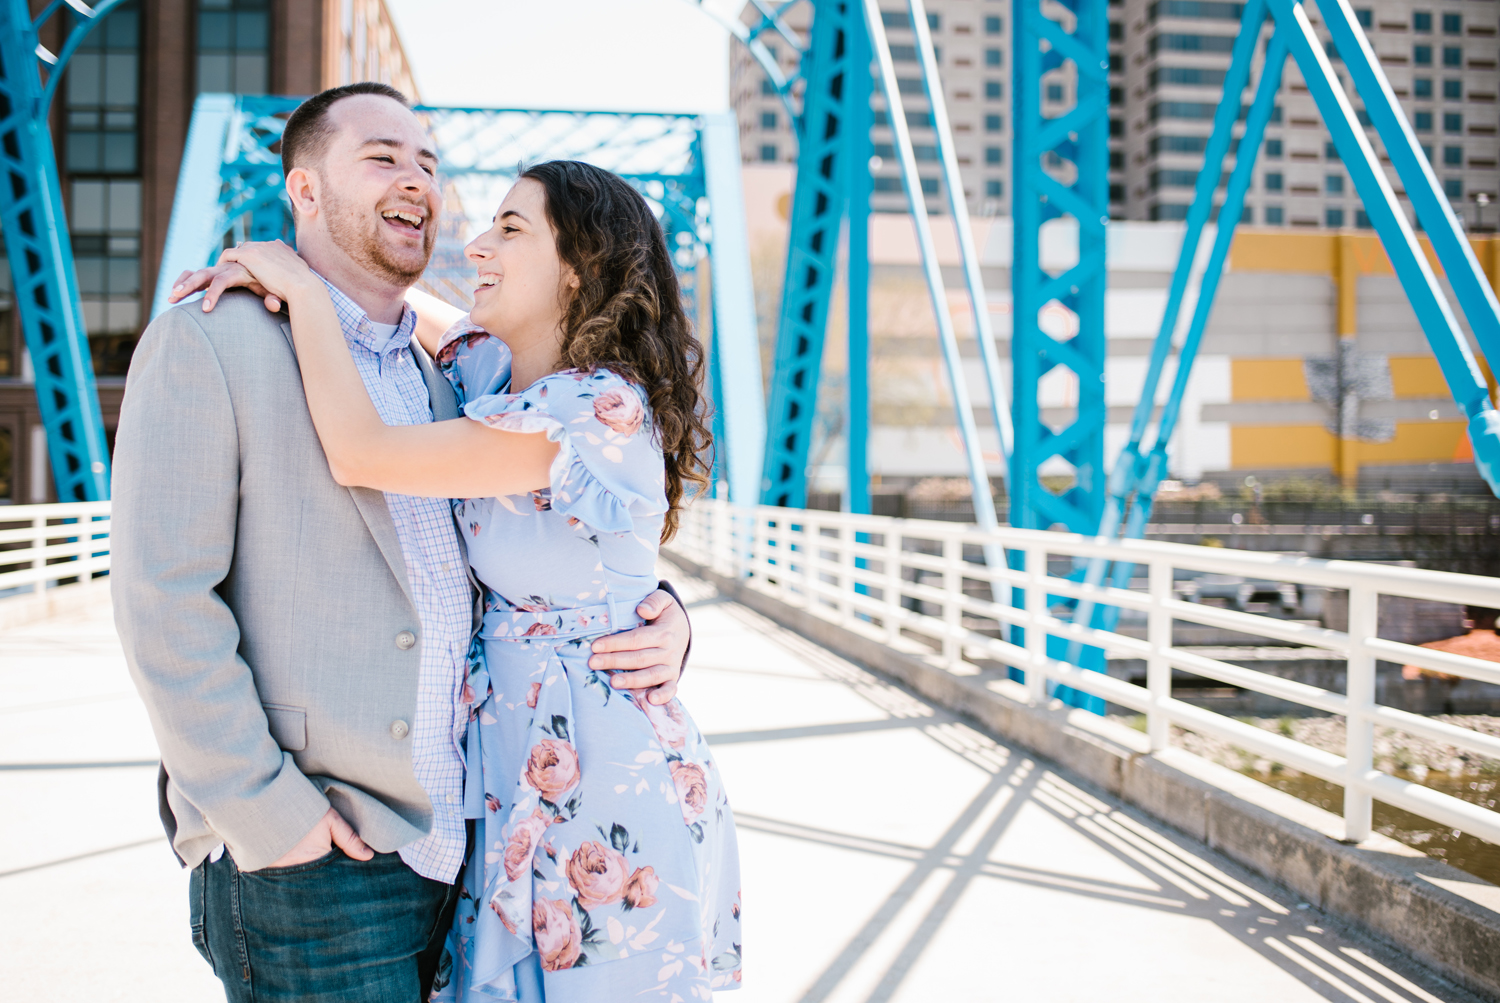 downtown-grand-rapids-michigan-engagement-photographer-spring-sydney-marie (143).jpg